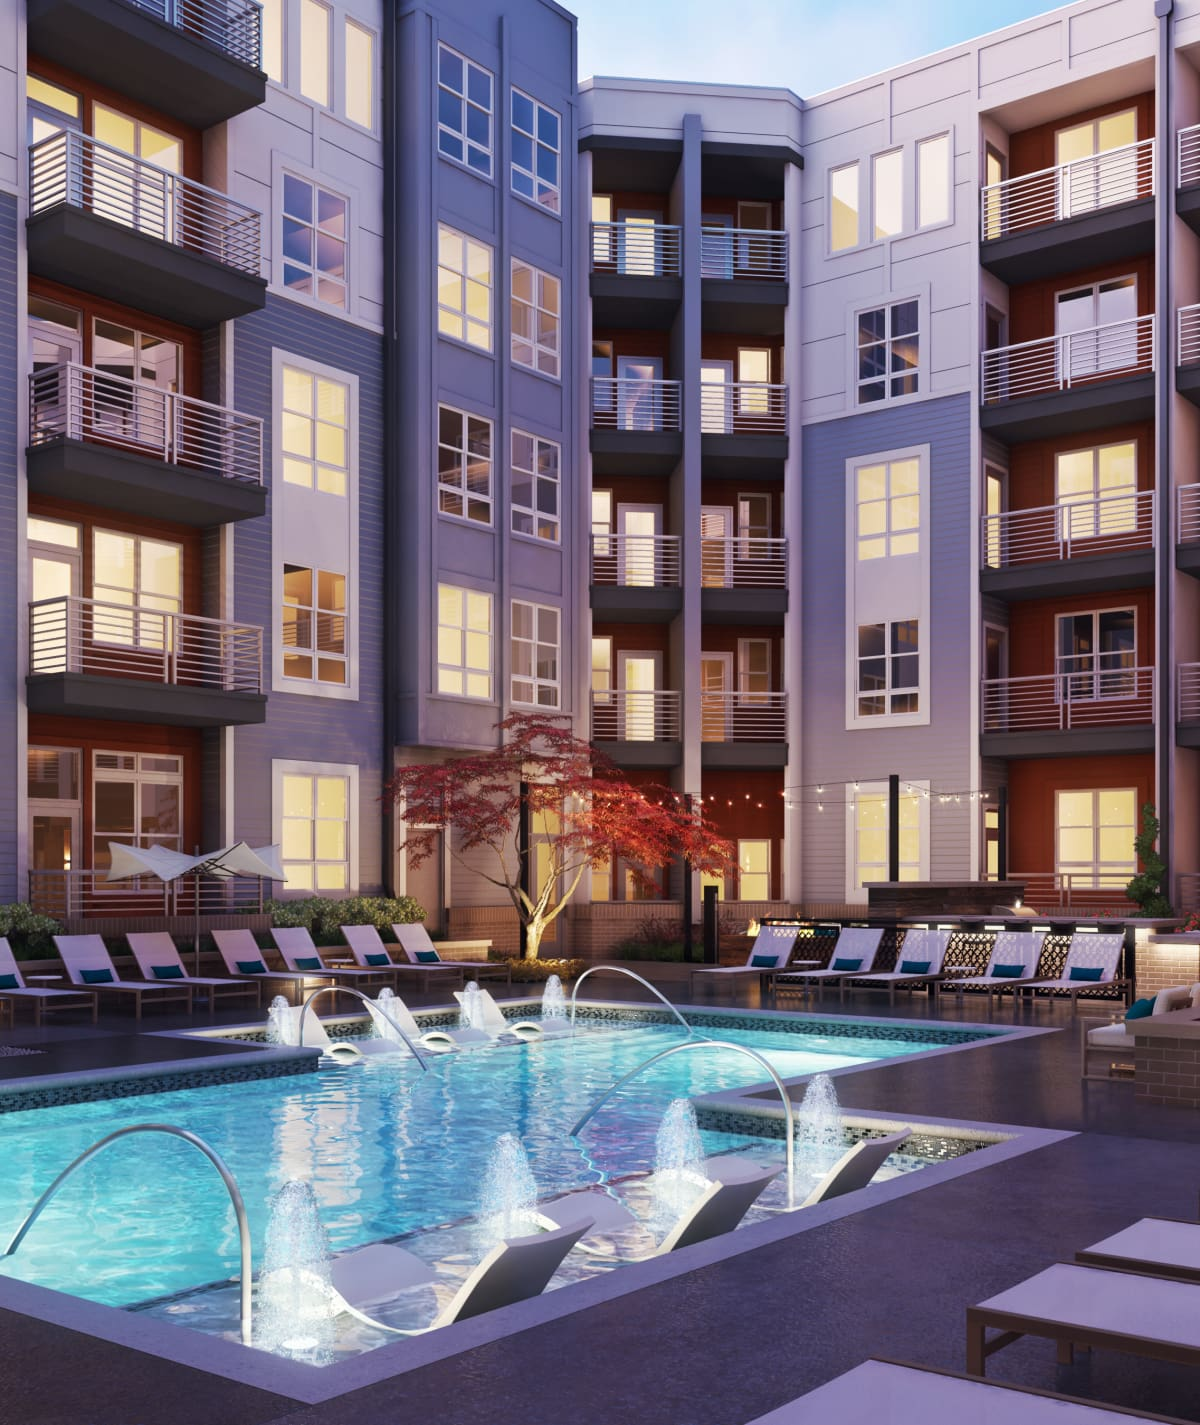 Rendering of pool area lit up at Alta Warp + Weft in Charlotte, North Carolina